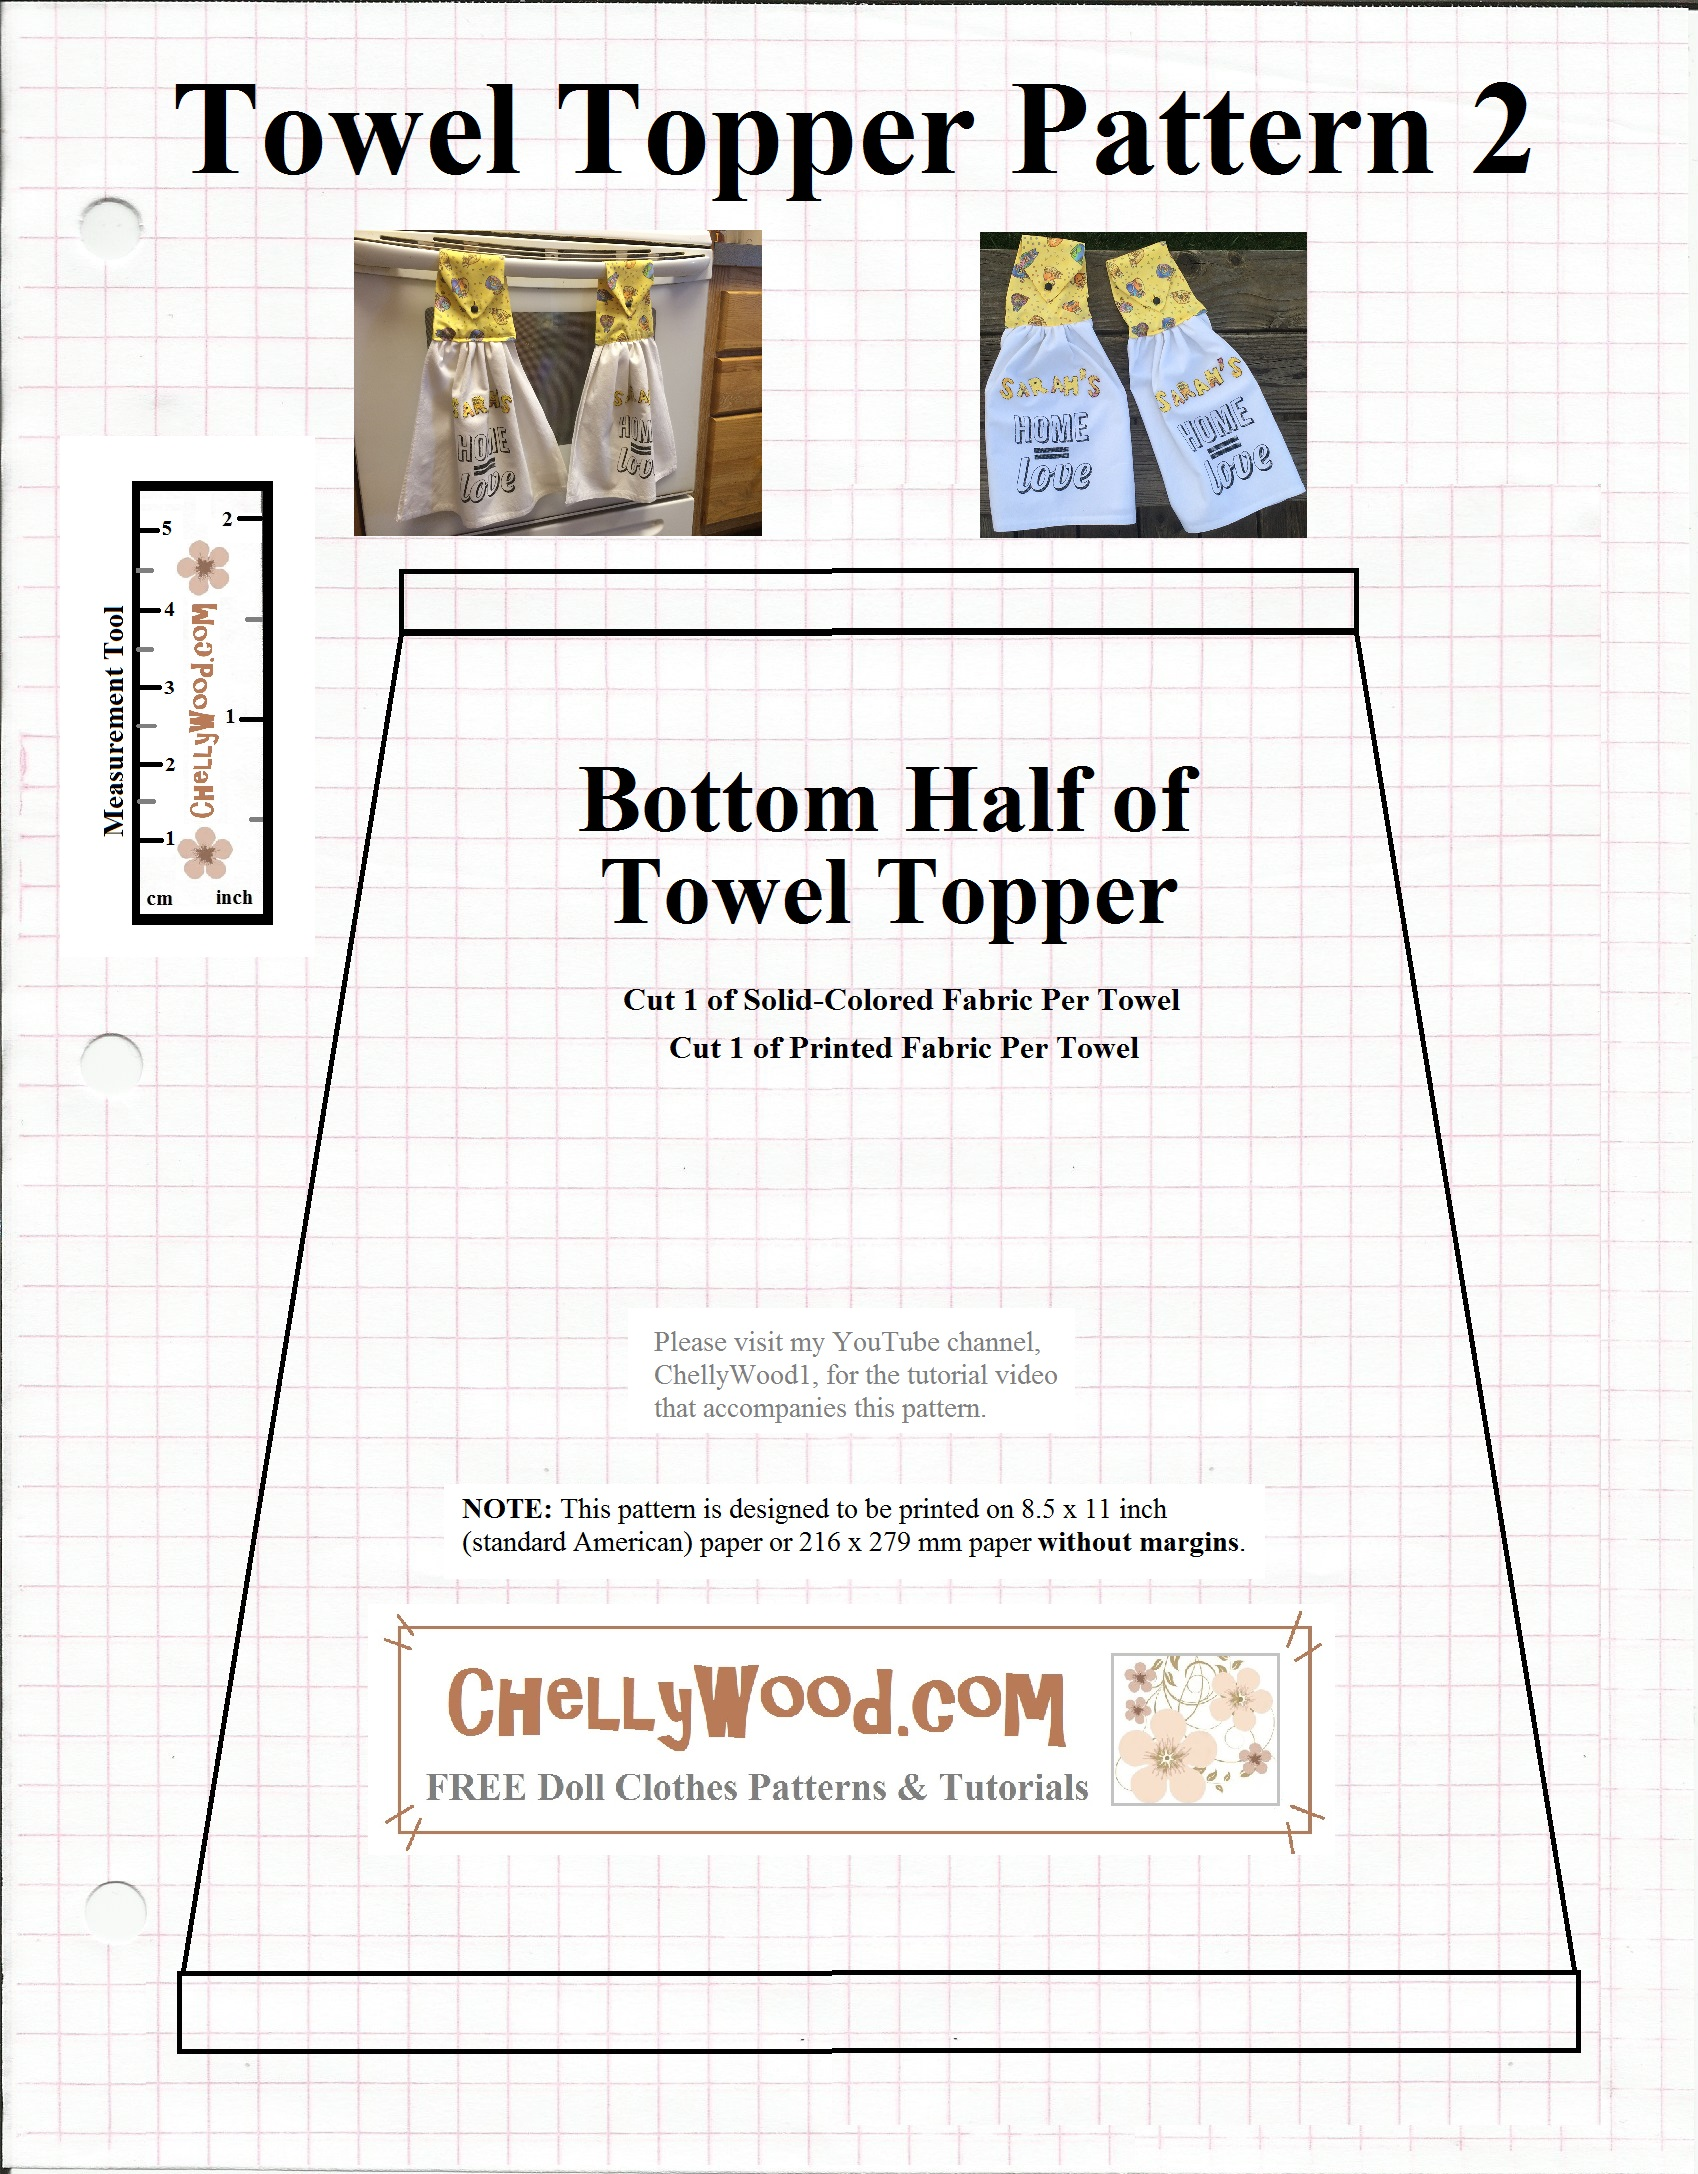 Sew A Tea Towel W Free Pattern Chellywood Com Sewing Diy Gift Free Doll Clothes Patterns